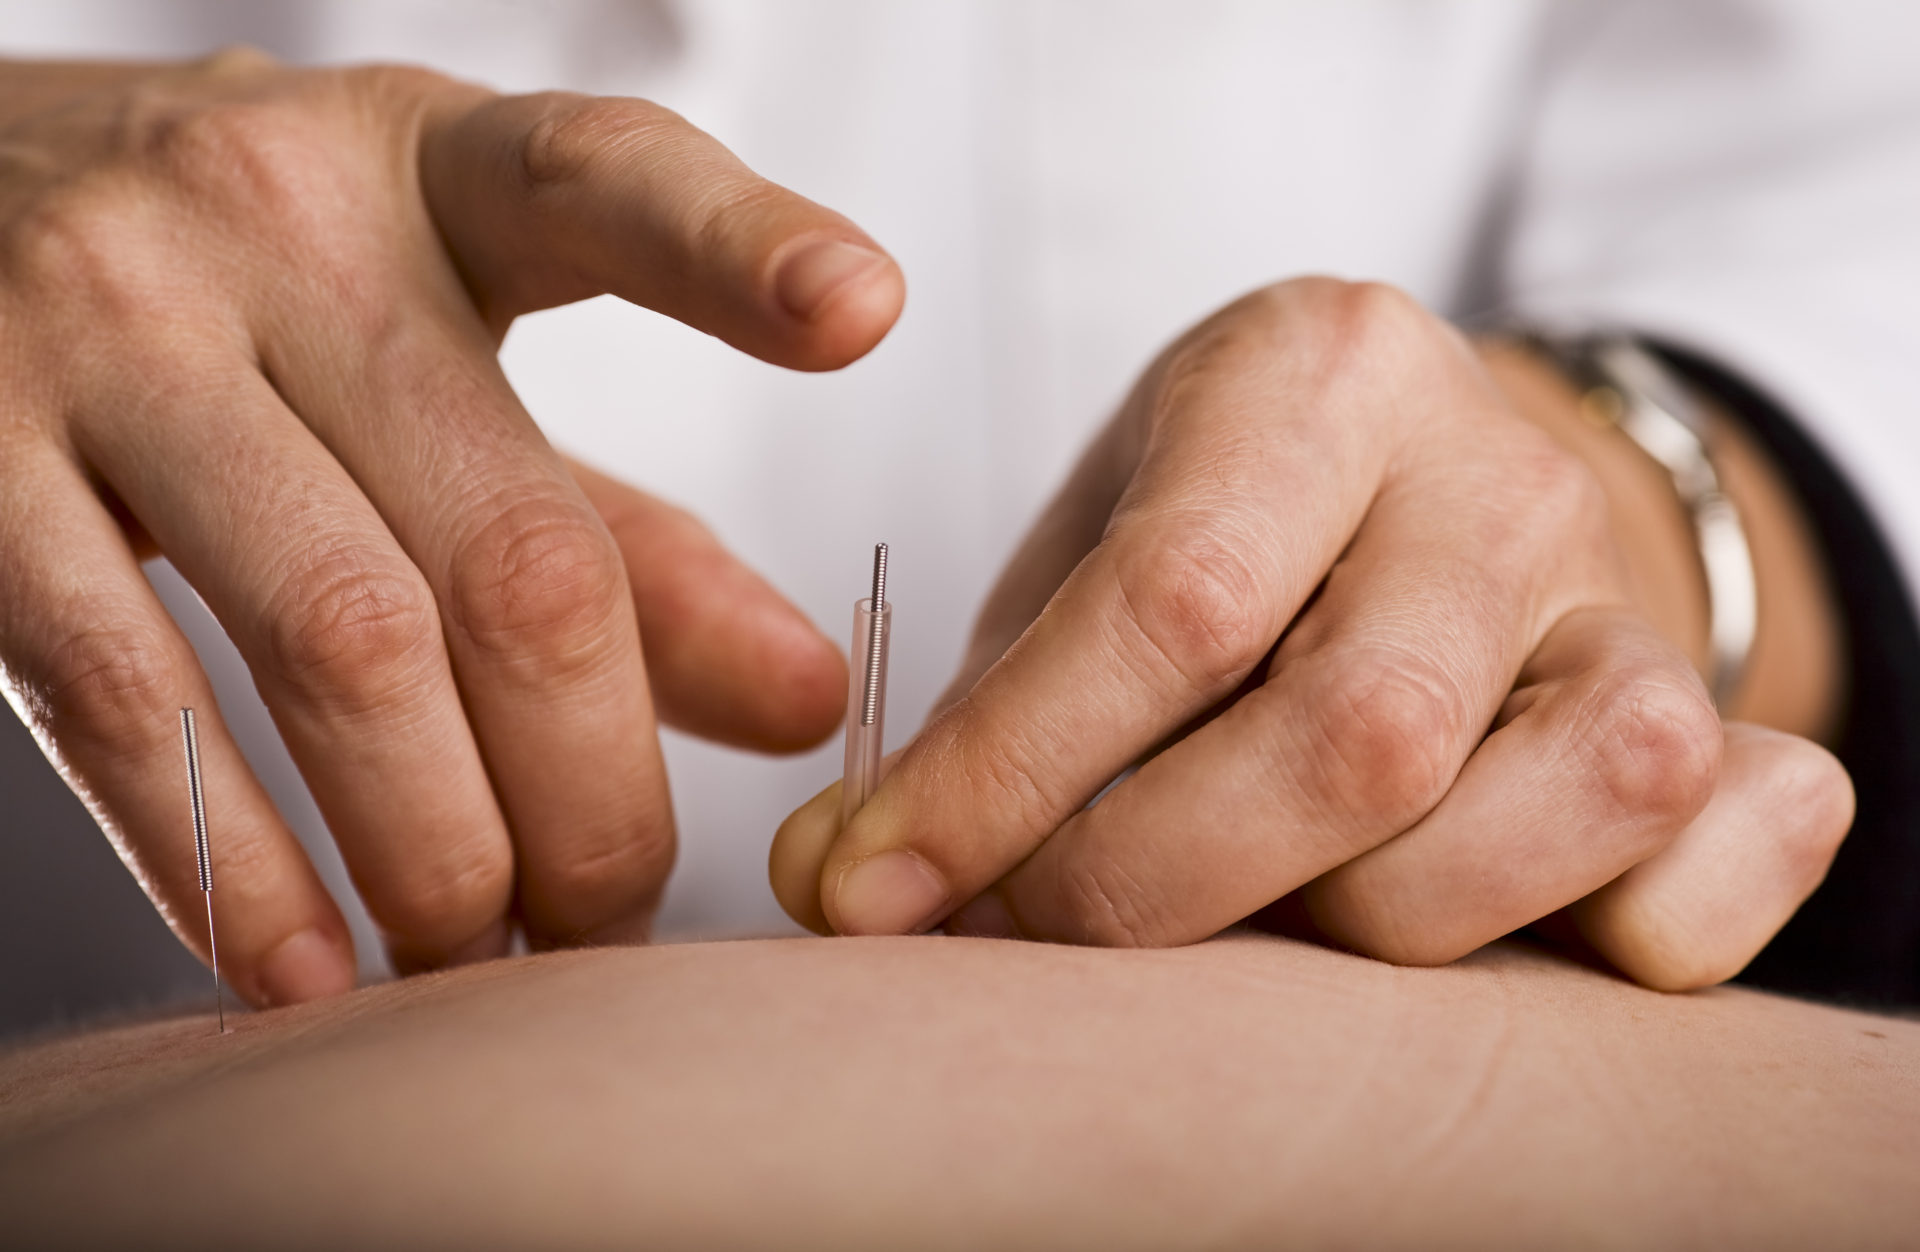 Acupuncture and Dry Needling – What's the difference?